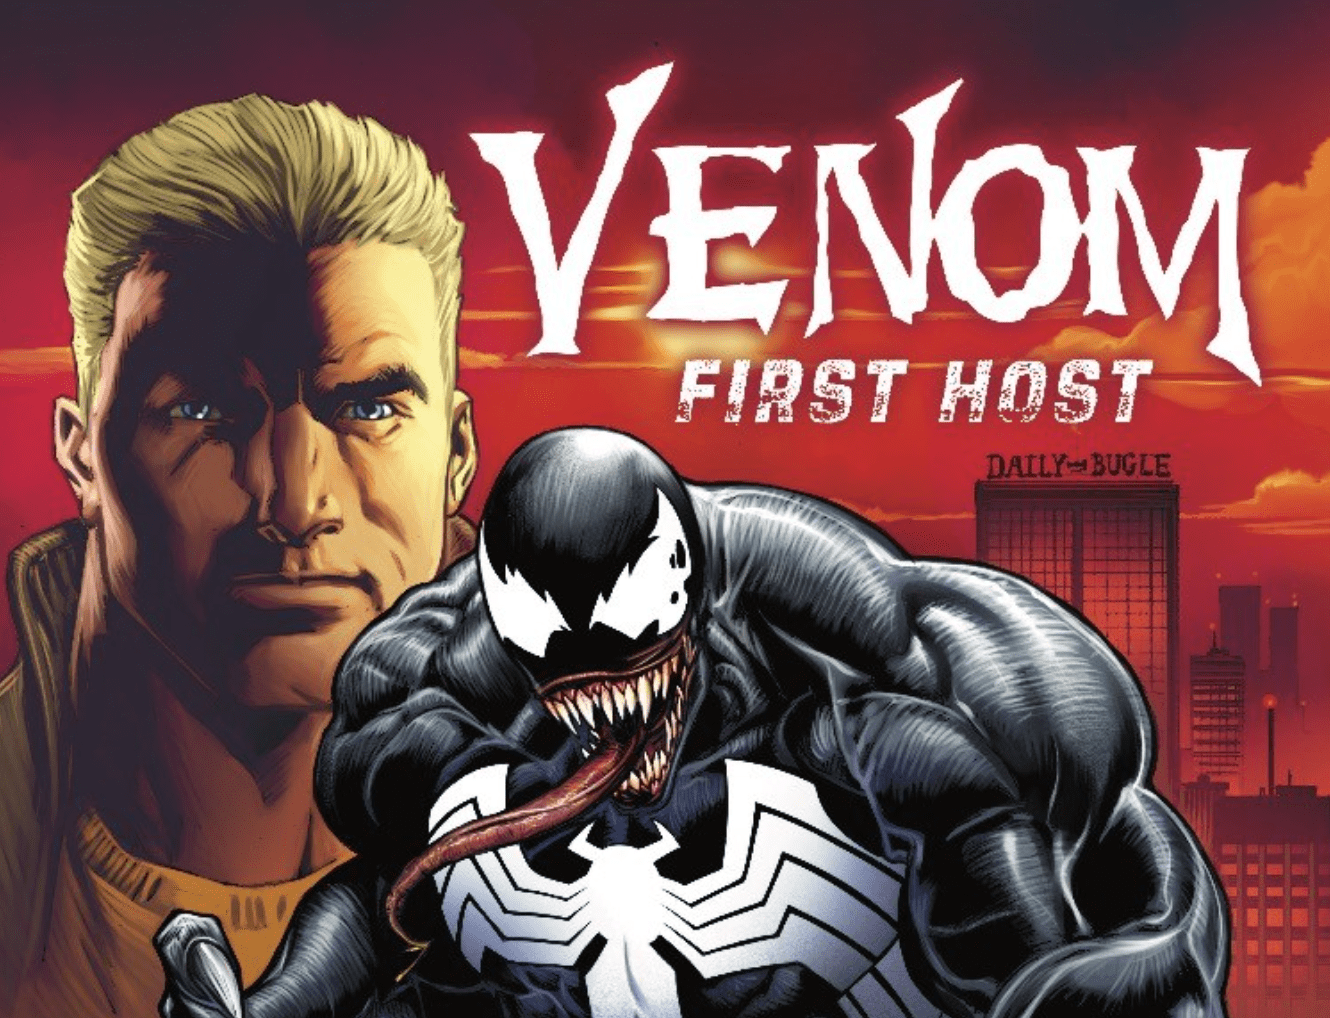 Before the AMAZING SPIDER-MAN…before VENOM… There was the FIRST HOST.